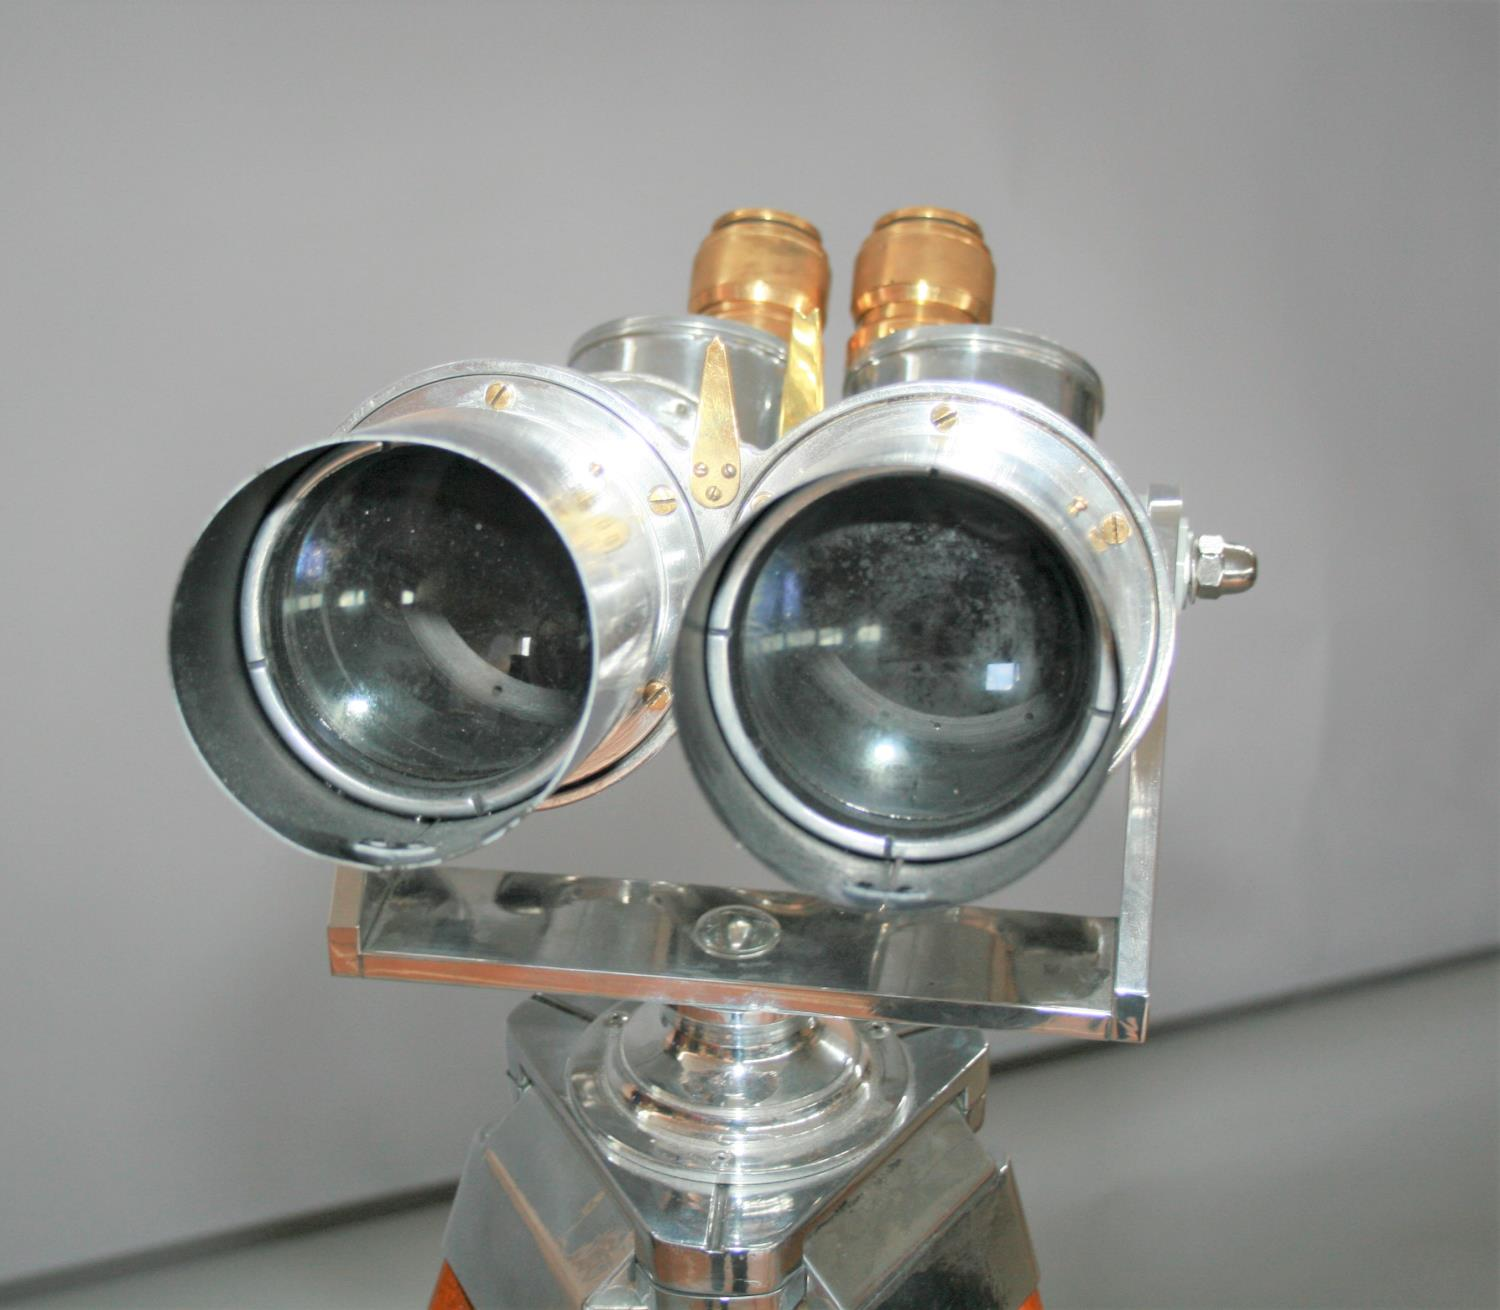 Exceptional pair of 1945 chrome binoculars from WW2 Japanese Aircraft carrier with accompanying - Image 5 of 7